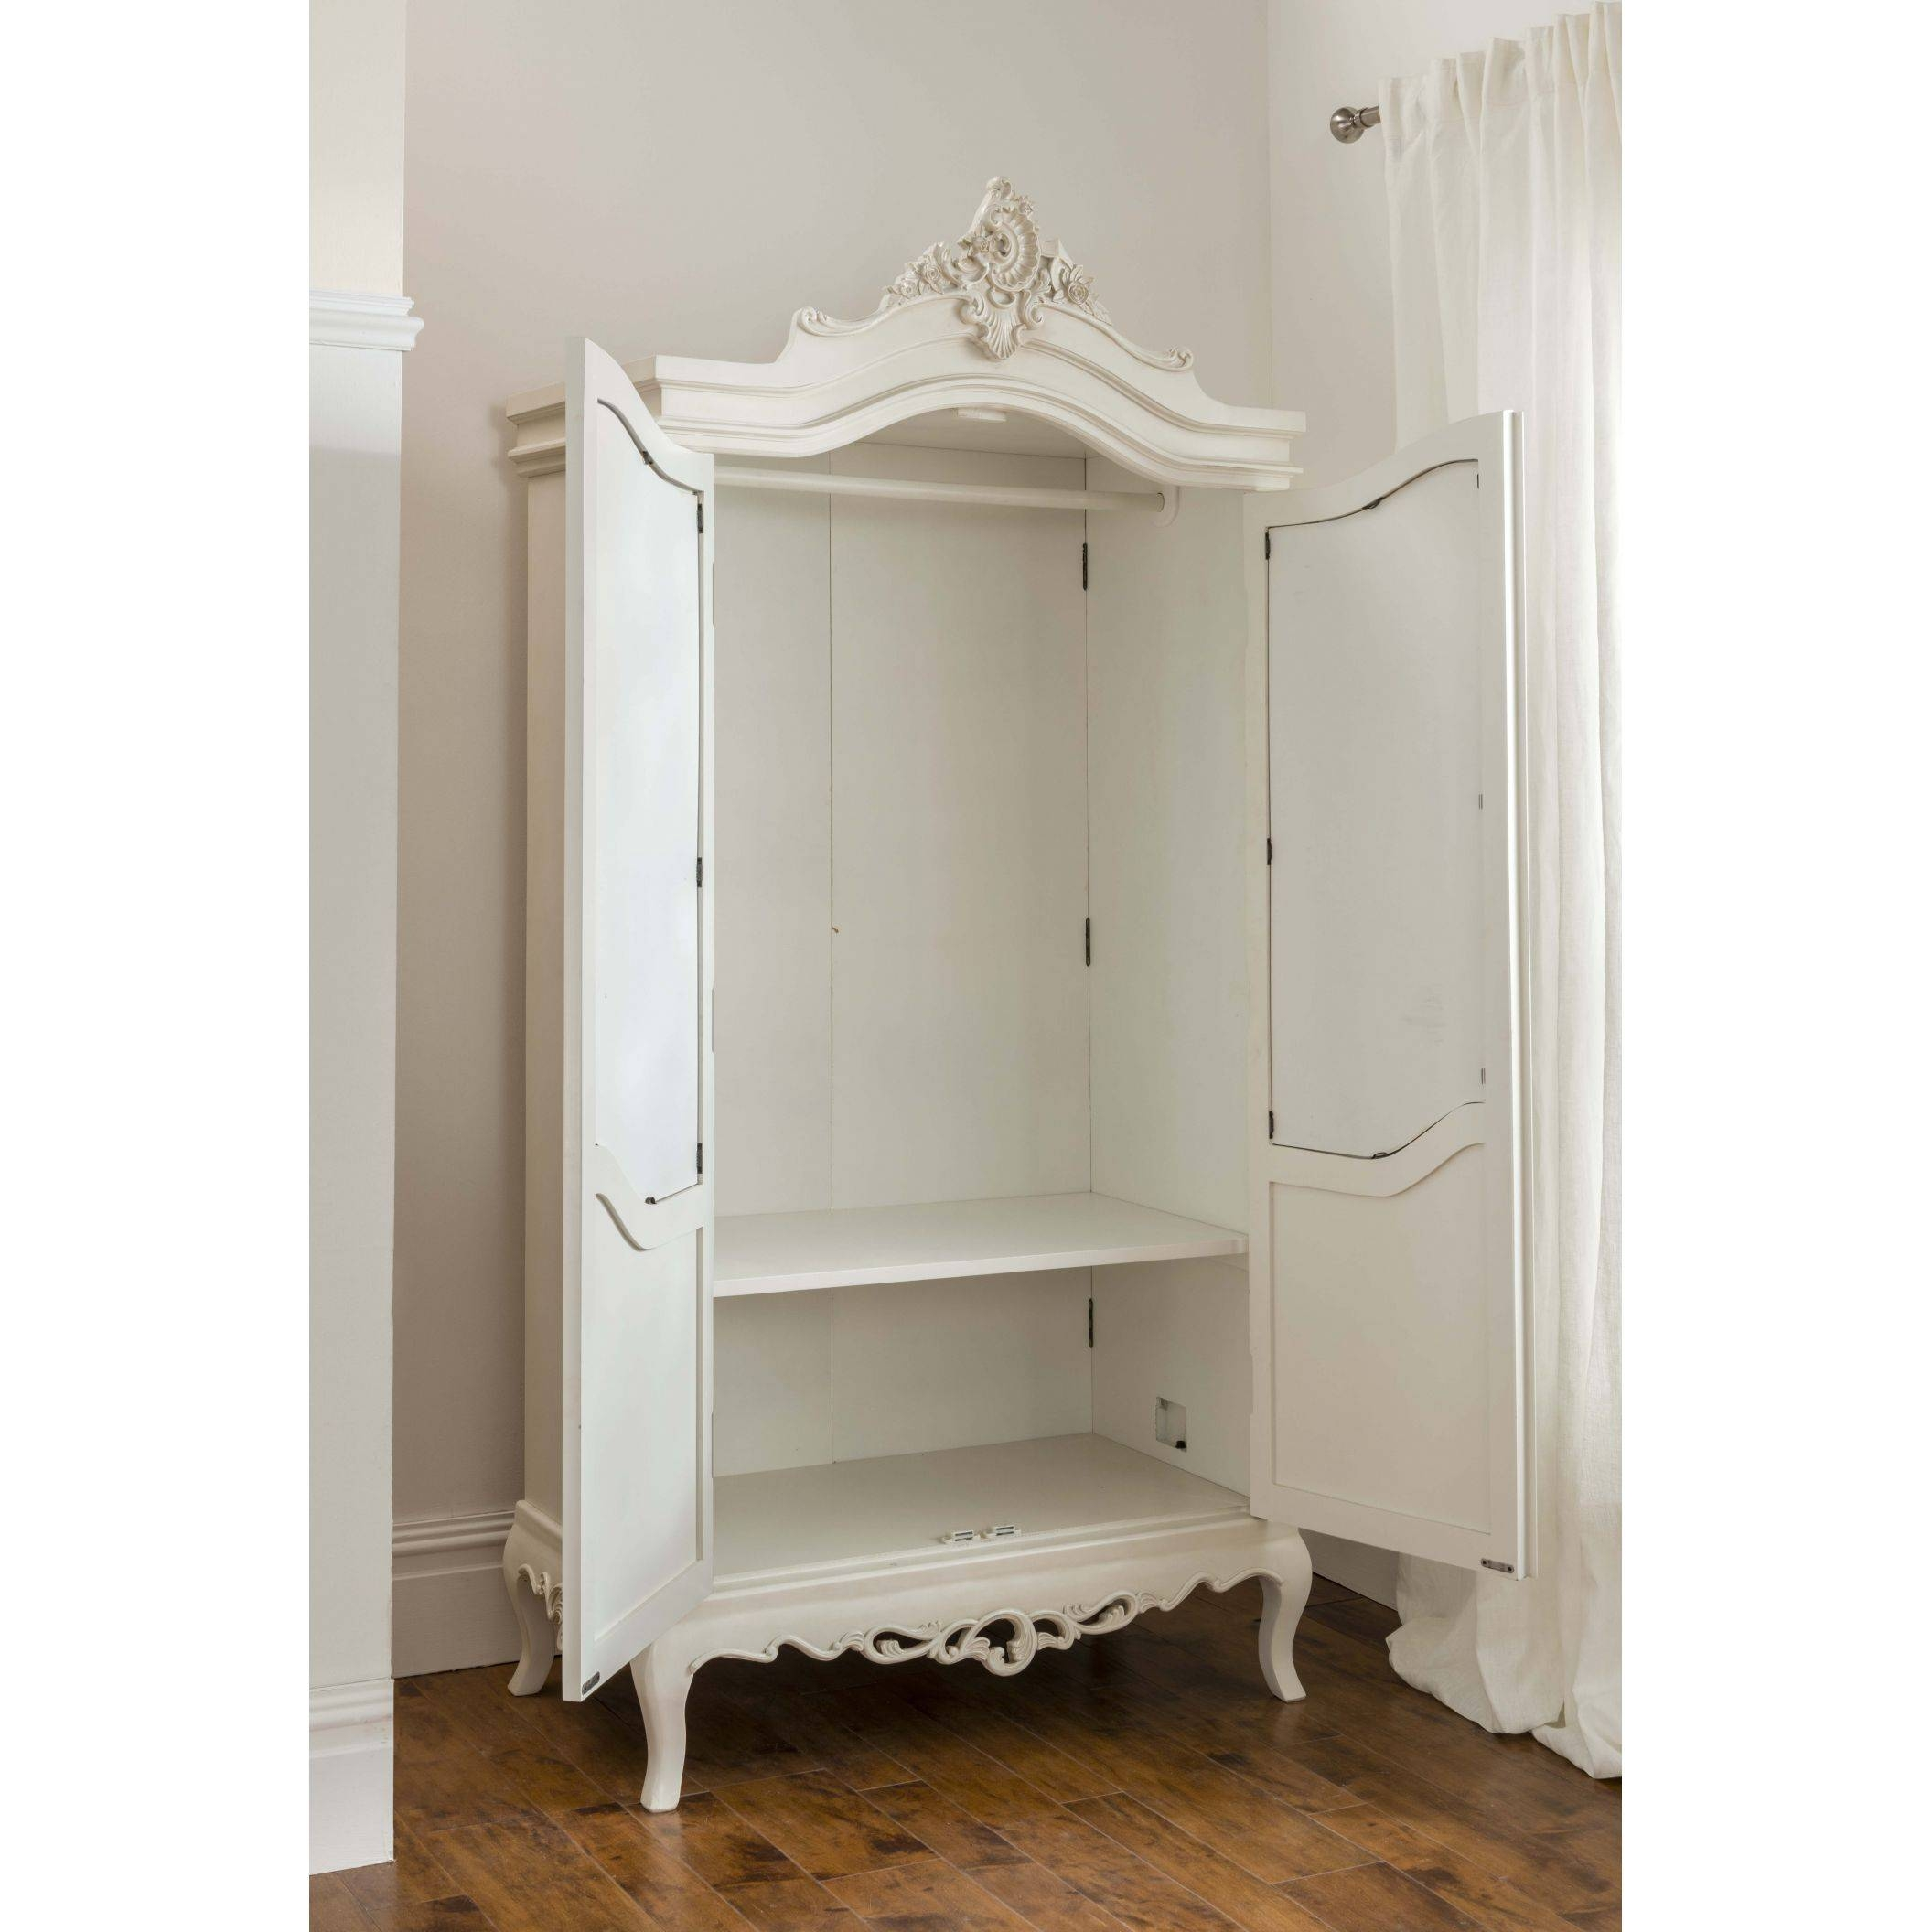 Annaelle Antique French Wardrobe regarding White French Wardrobes (Image 1 of 15)